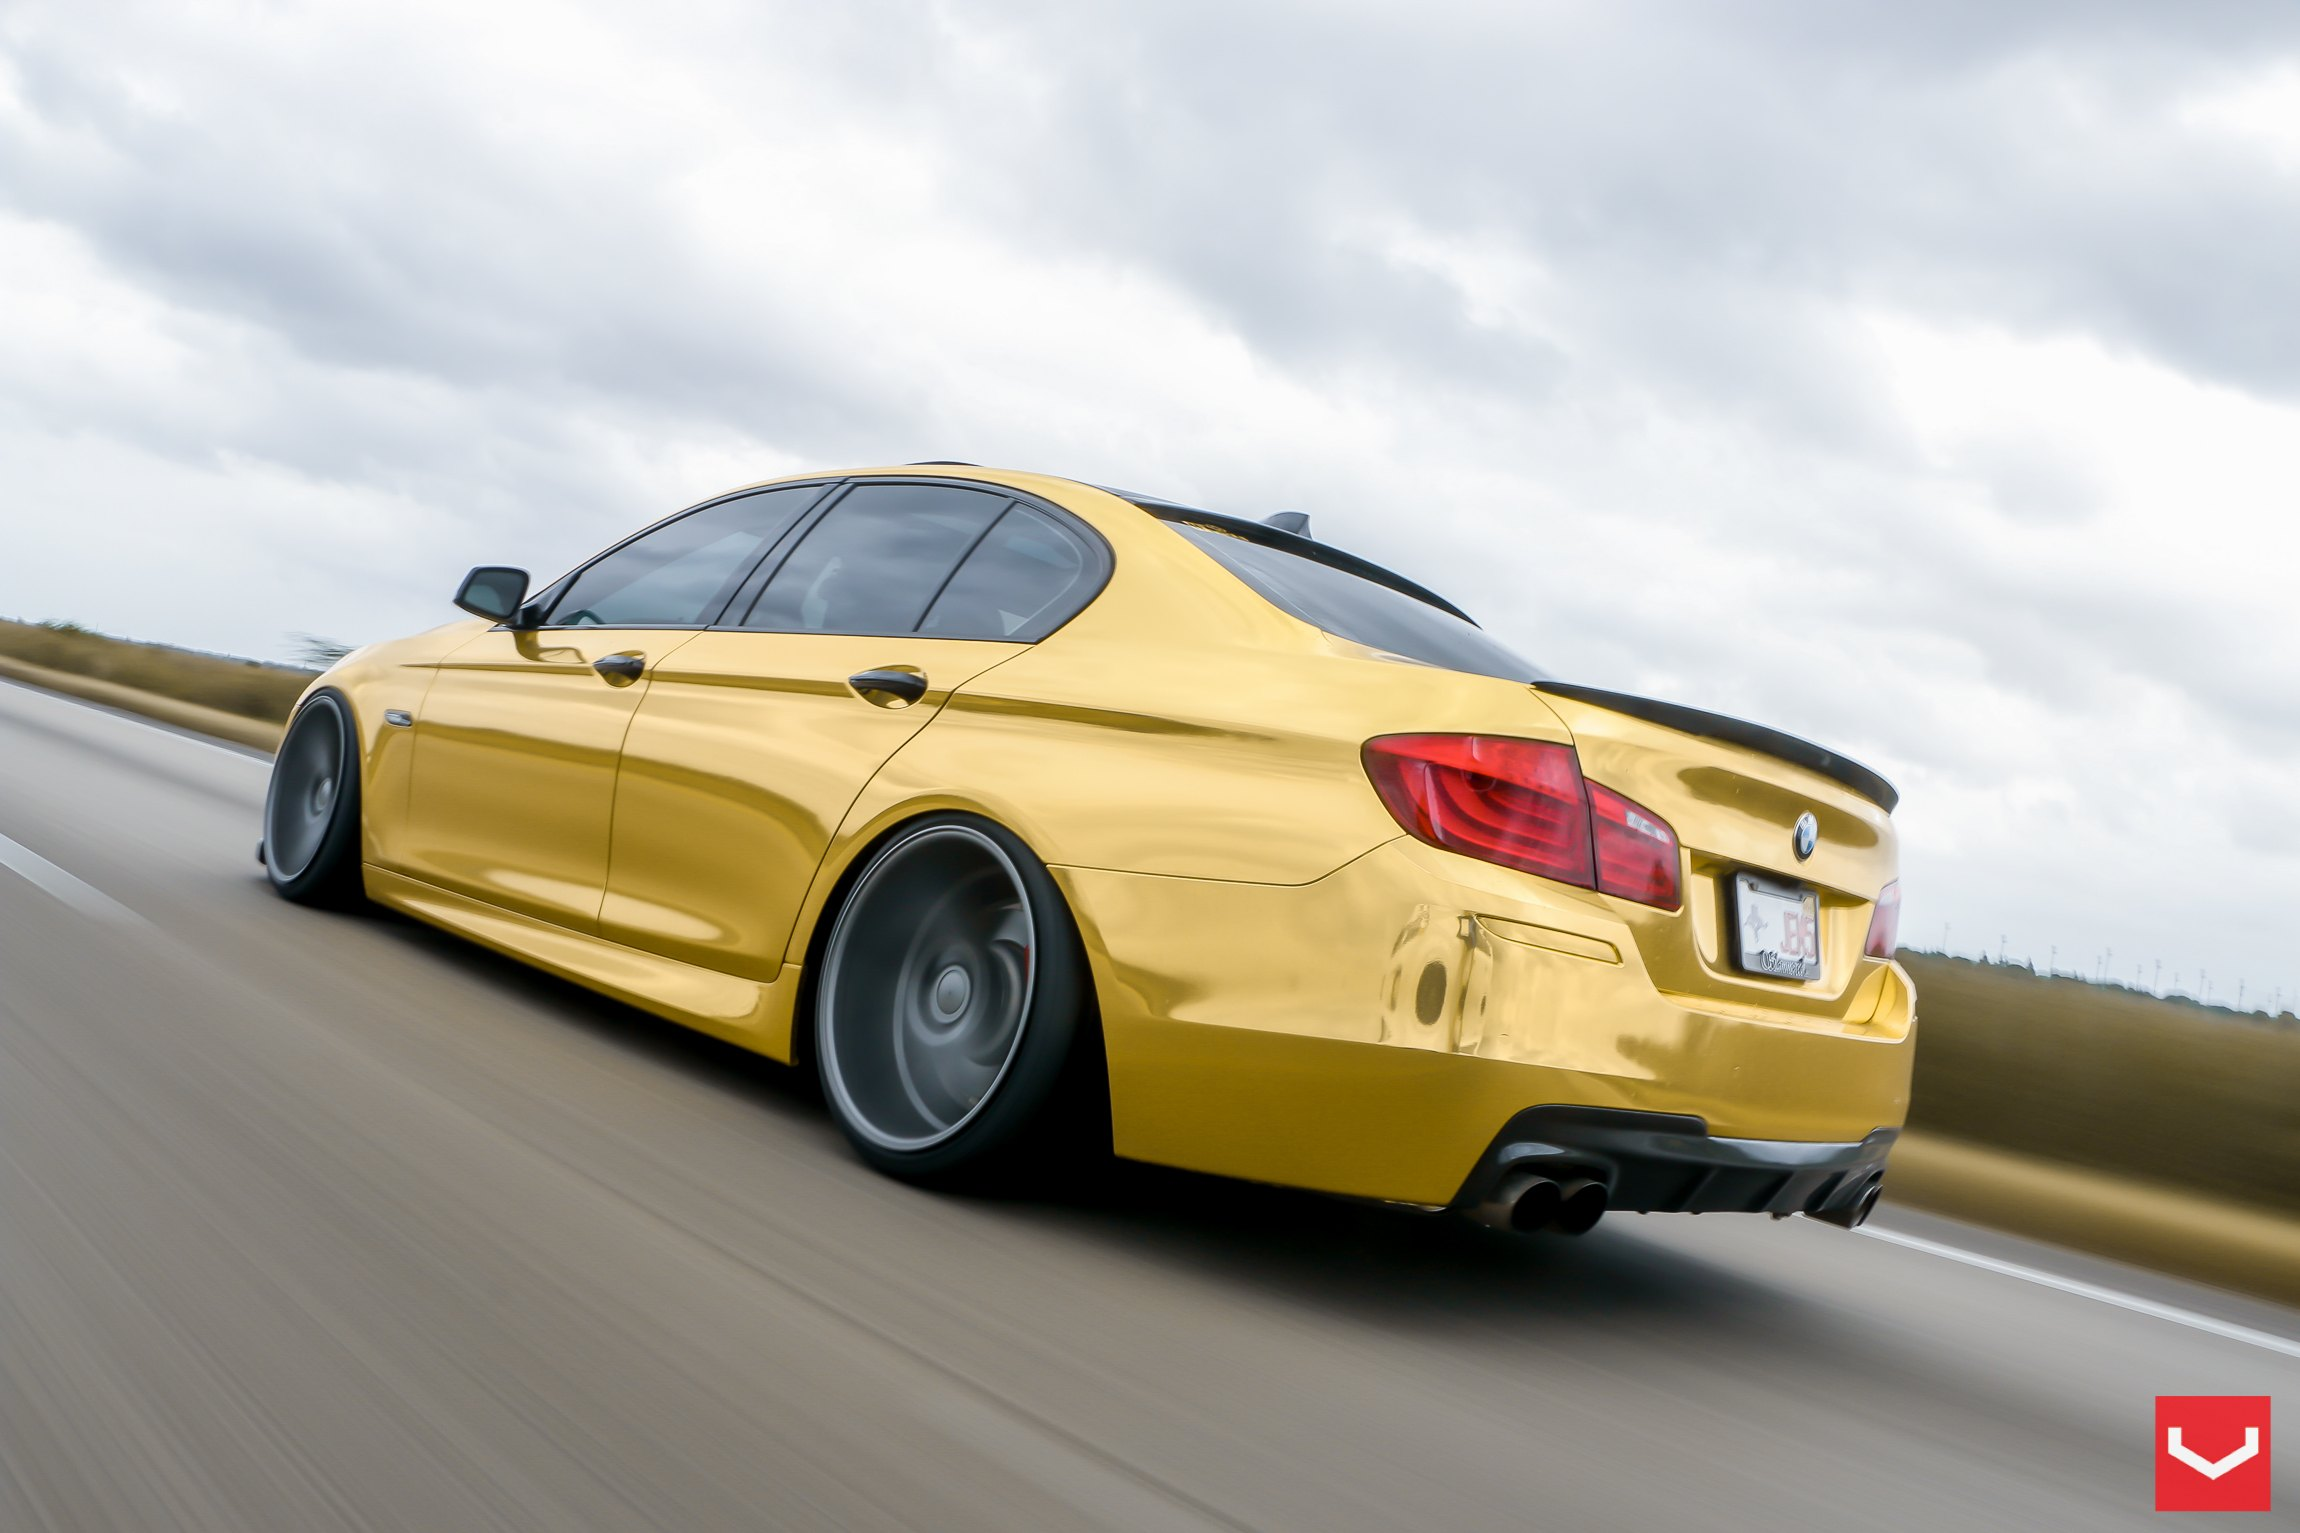 Bmw 5 Series Gets A Custom Gold Wrapping Carid Com Gallery